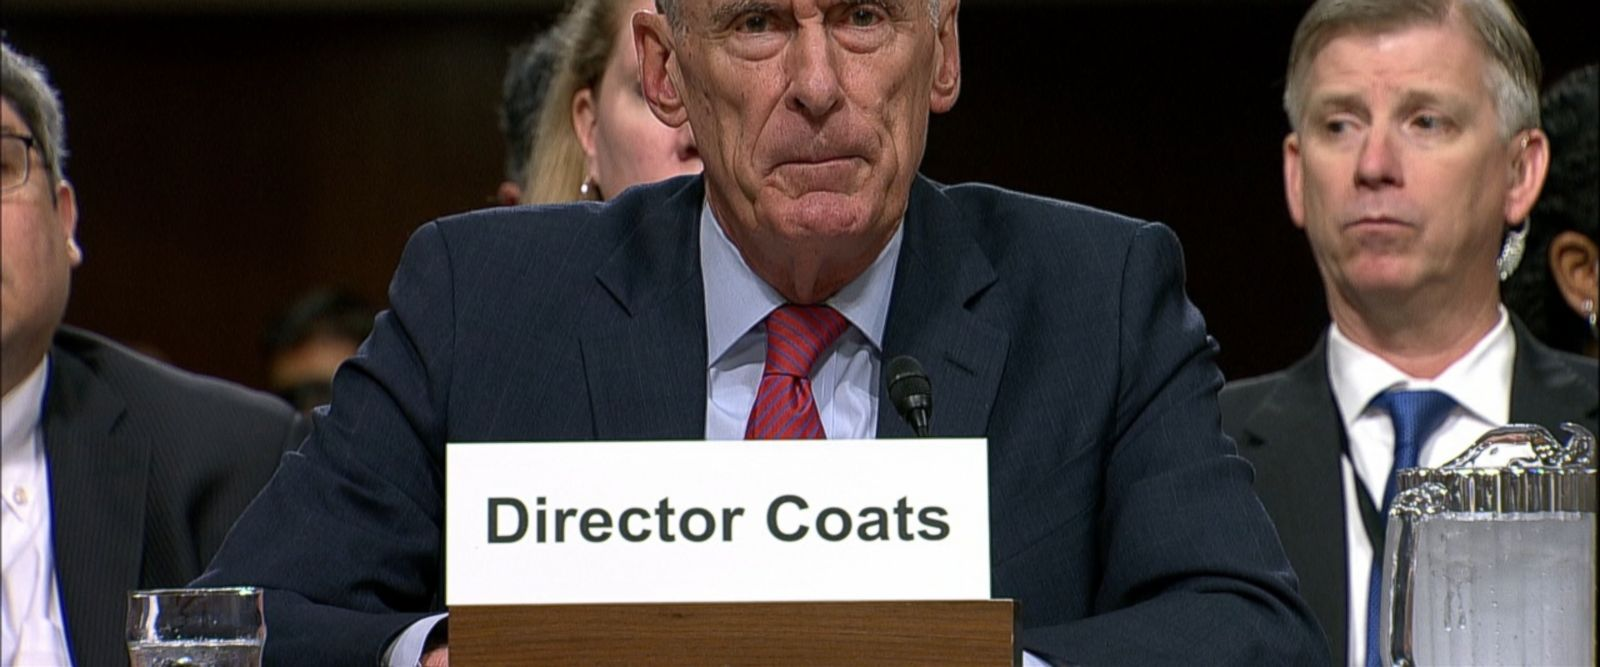 """It's not appropriate for me to comment publicly on any of that,"" Director Coats told the Senate Armed Services committee today."